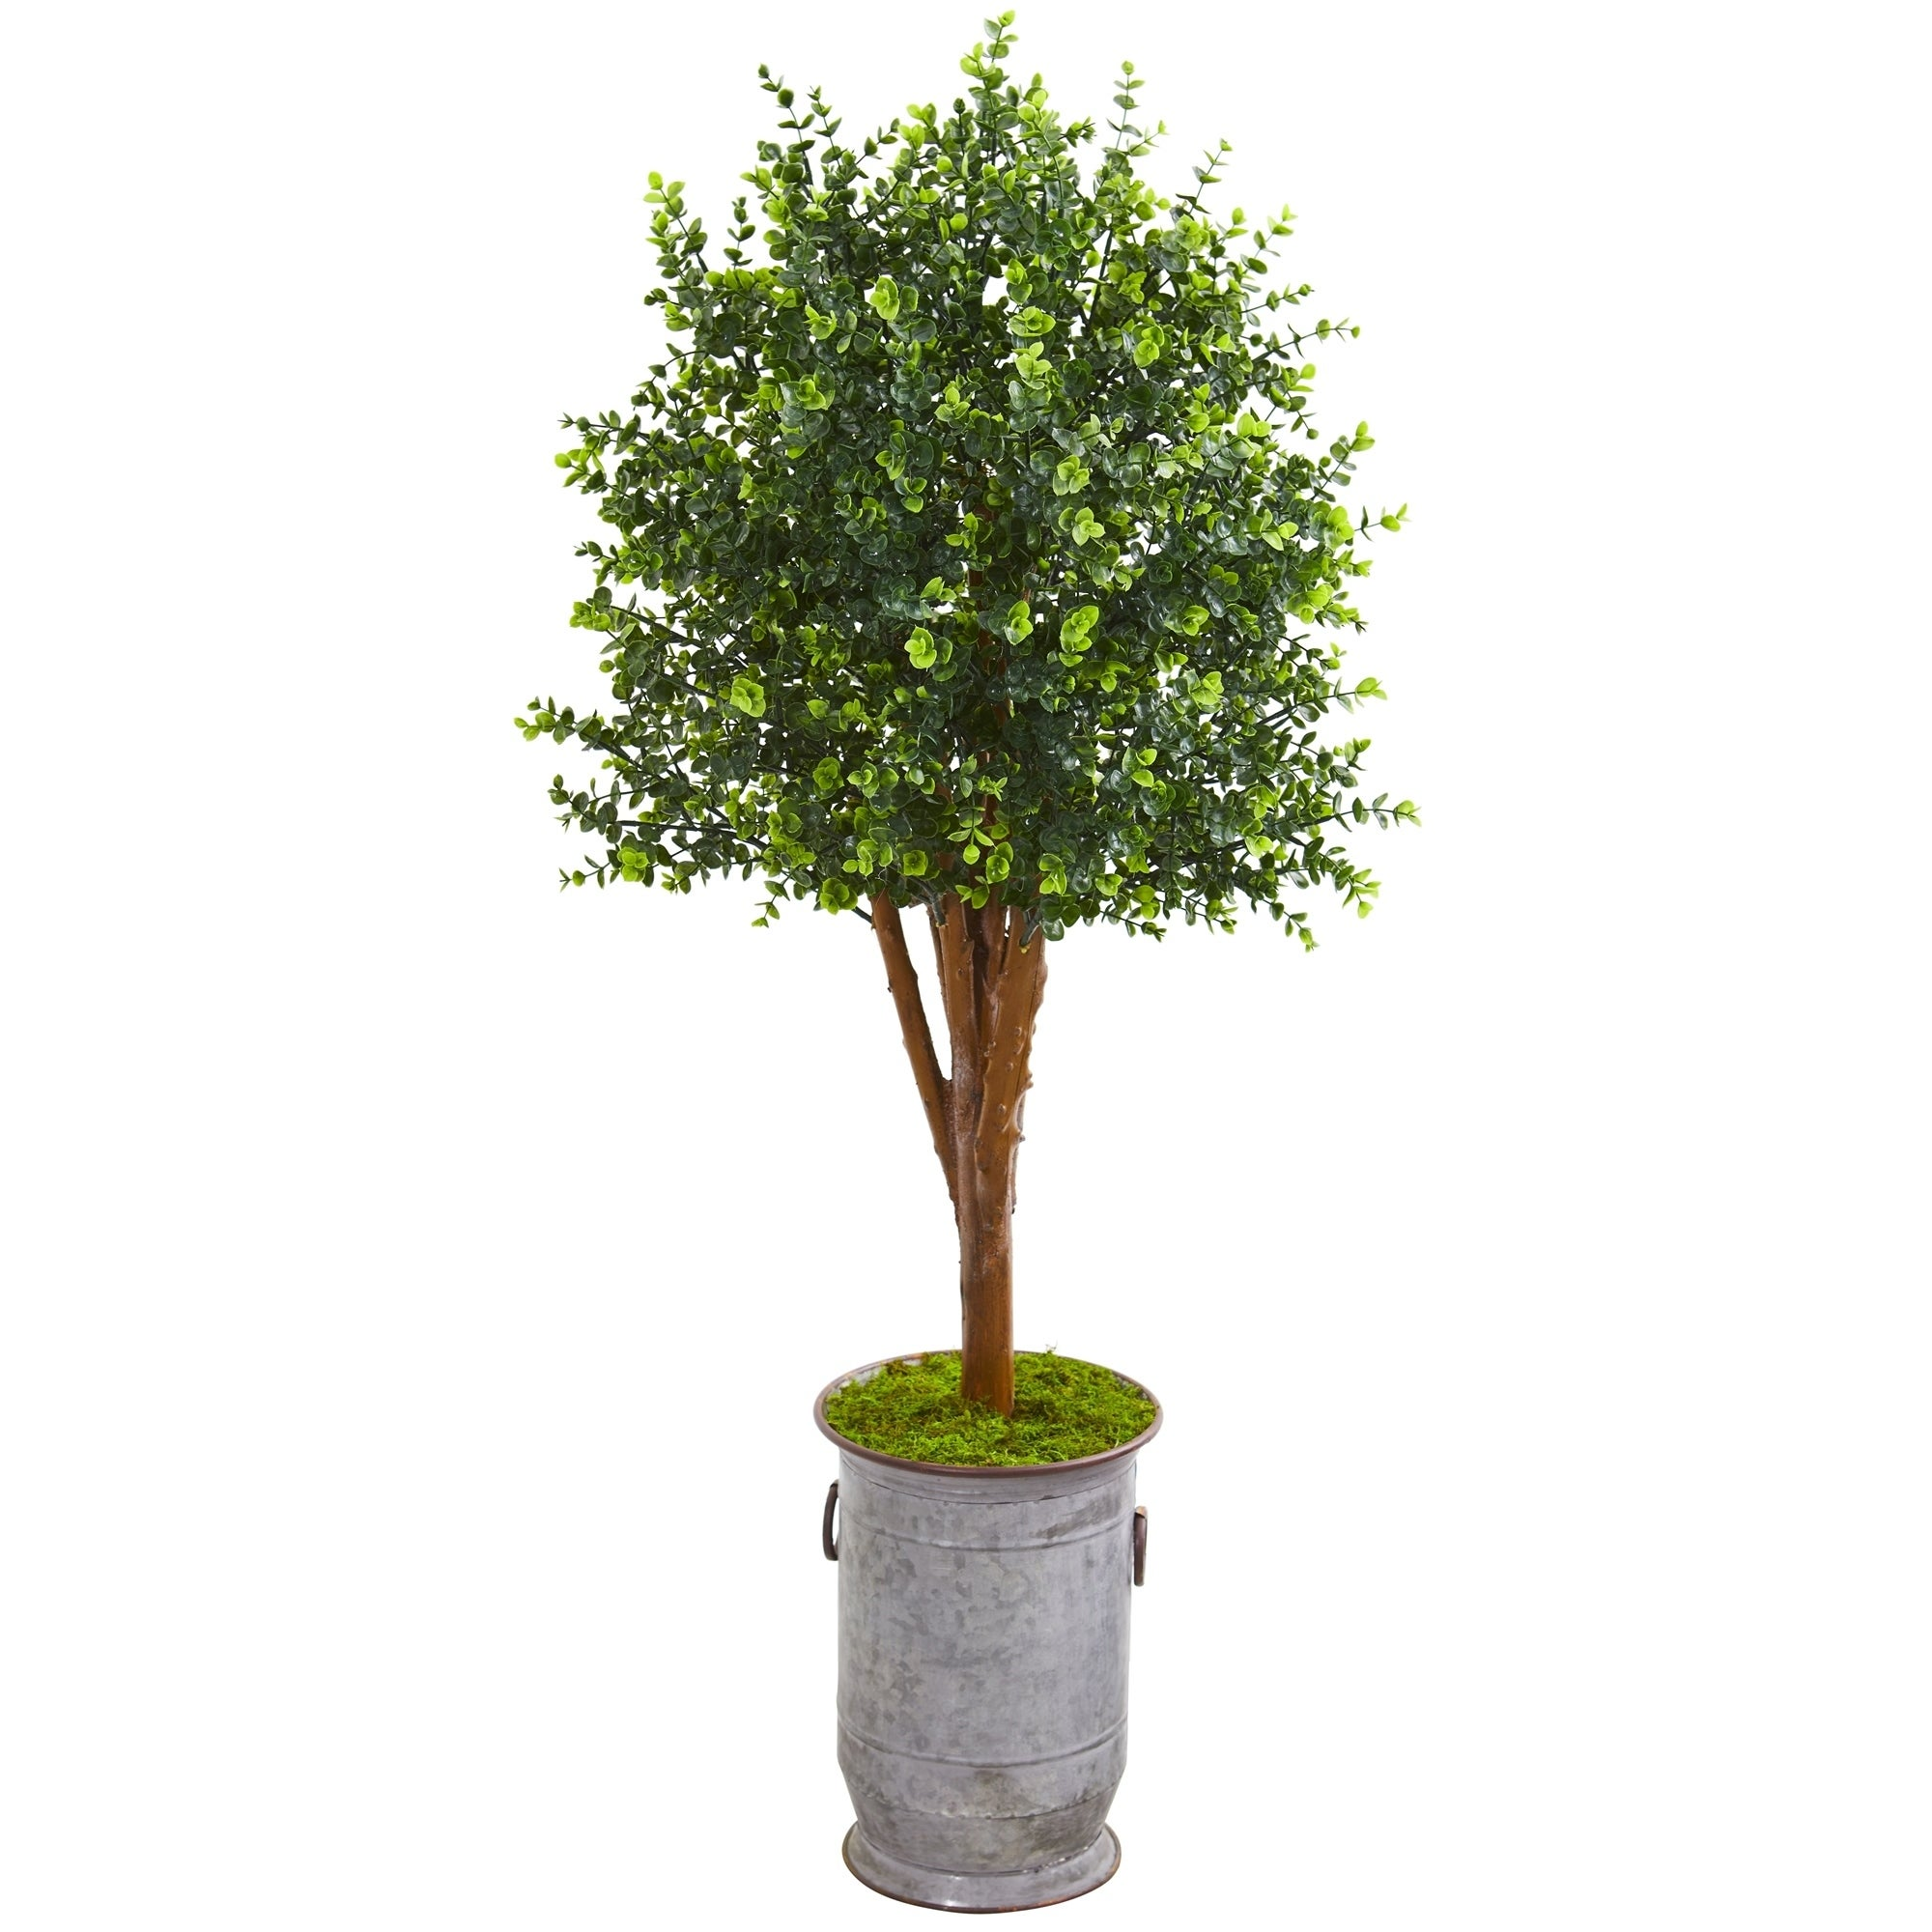 57 Eucalyptus Artificial Tree in Metal Planter UV Resistant (Indoor/Outdoor)